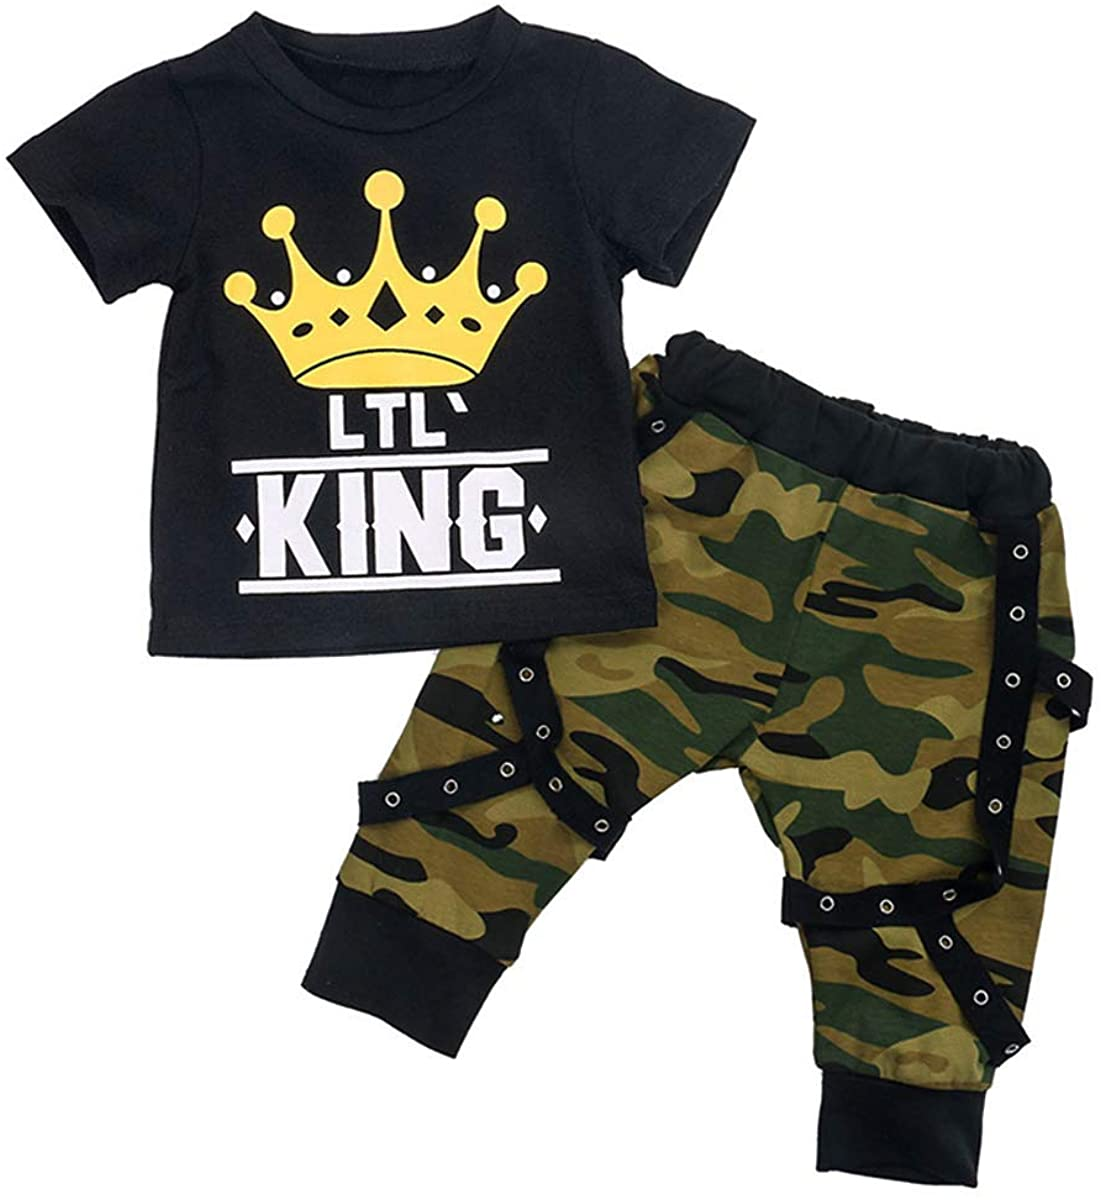 Kids Toddler Newborn Baby Boy Pants Outfit Short Sleeve T-Shirt Top Camouflage Pants 2Pcs Casual Clothes Set